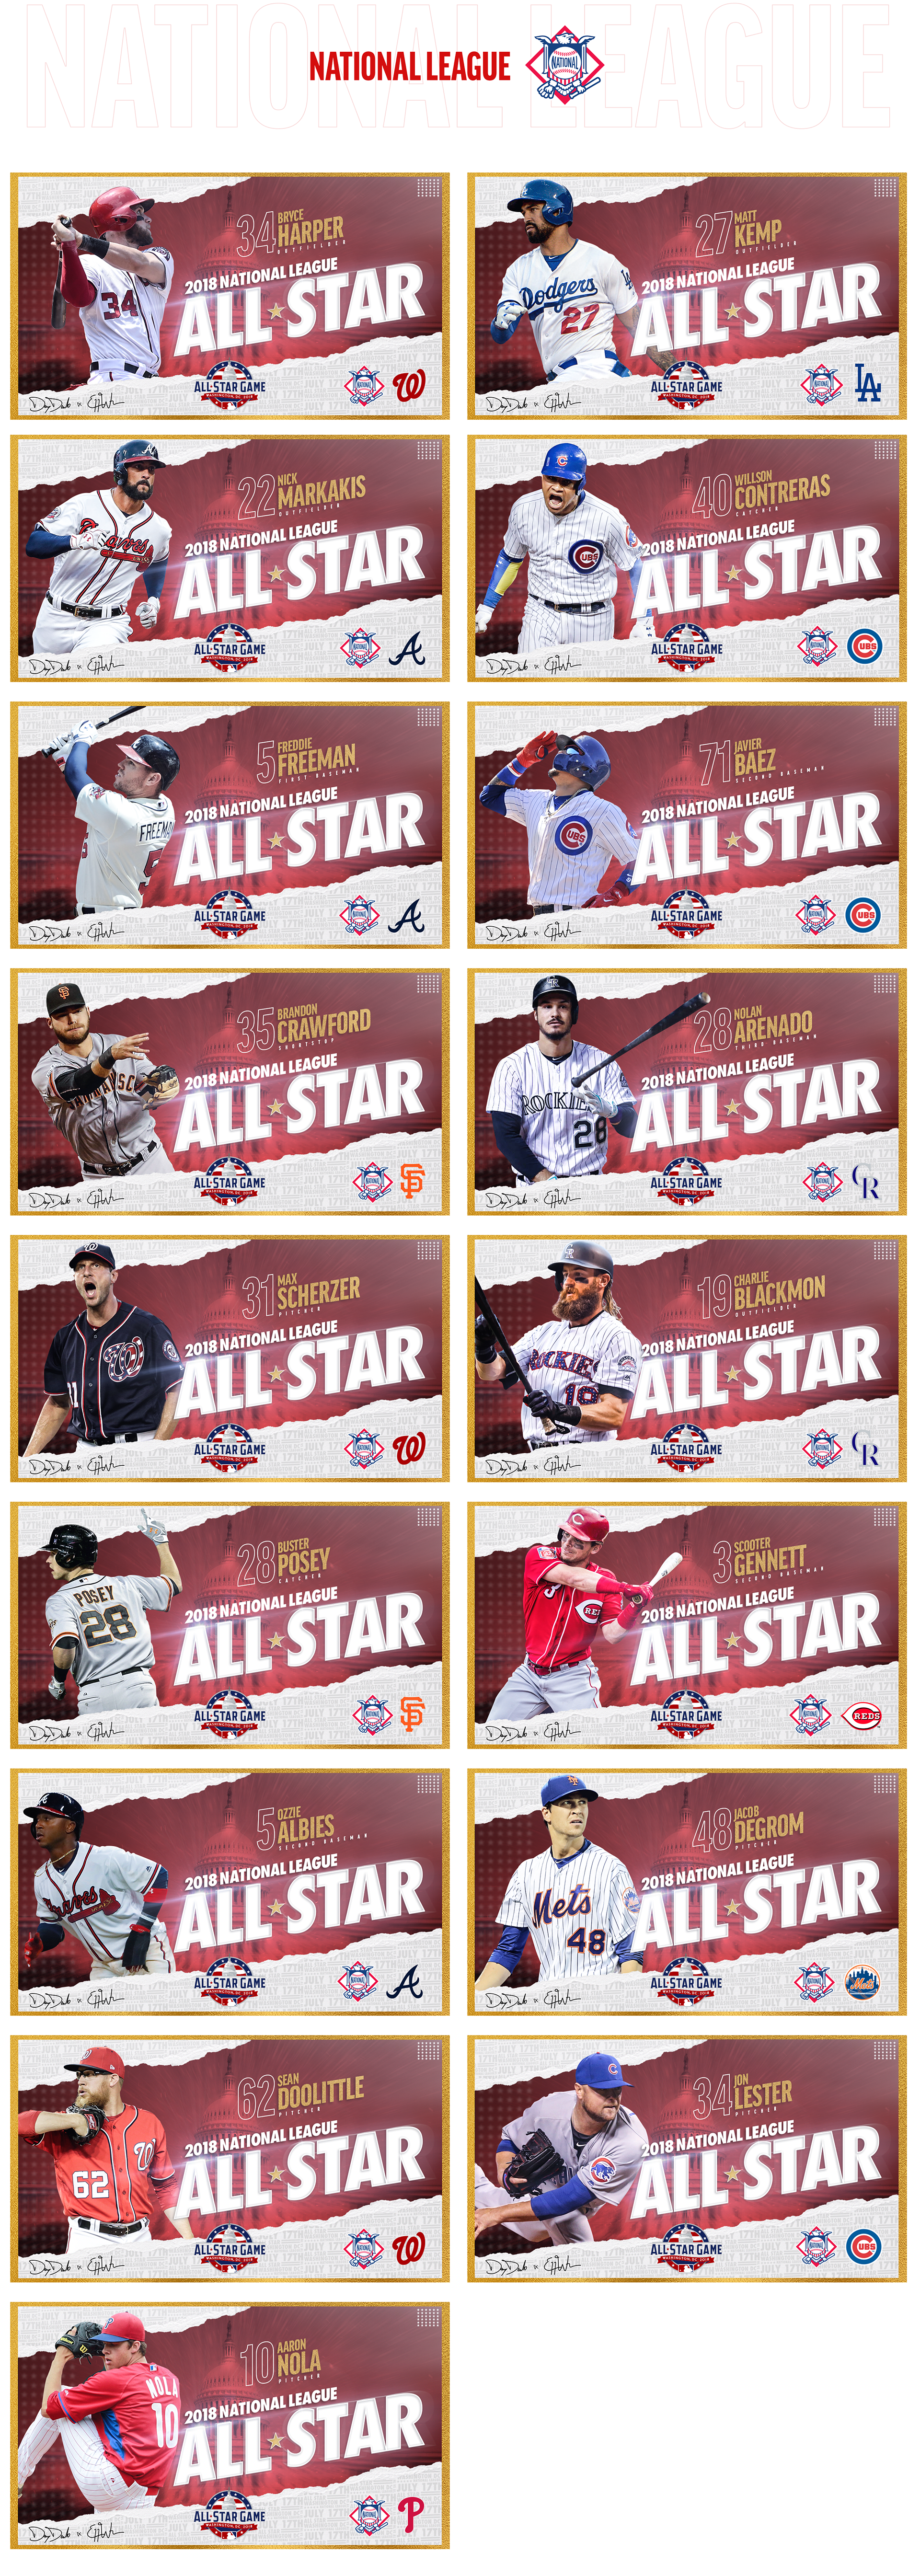 2018 Mlb All Star Game On Behance In 2020 With Images Sports Graphic Design Sports Design Inspiration Mlb